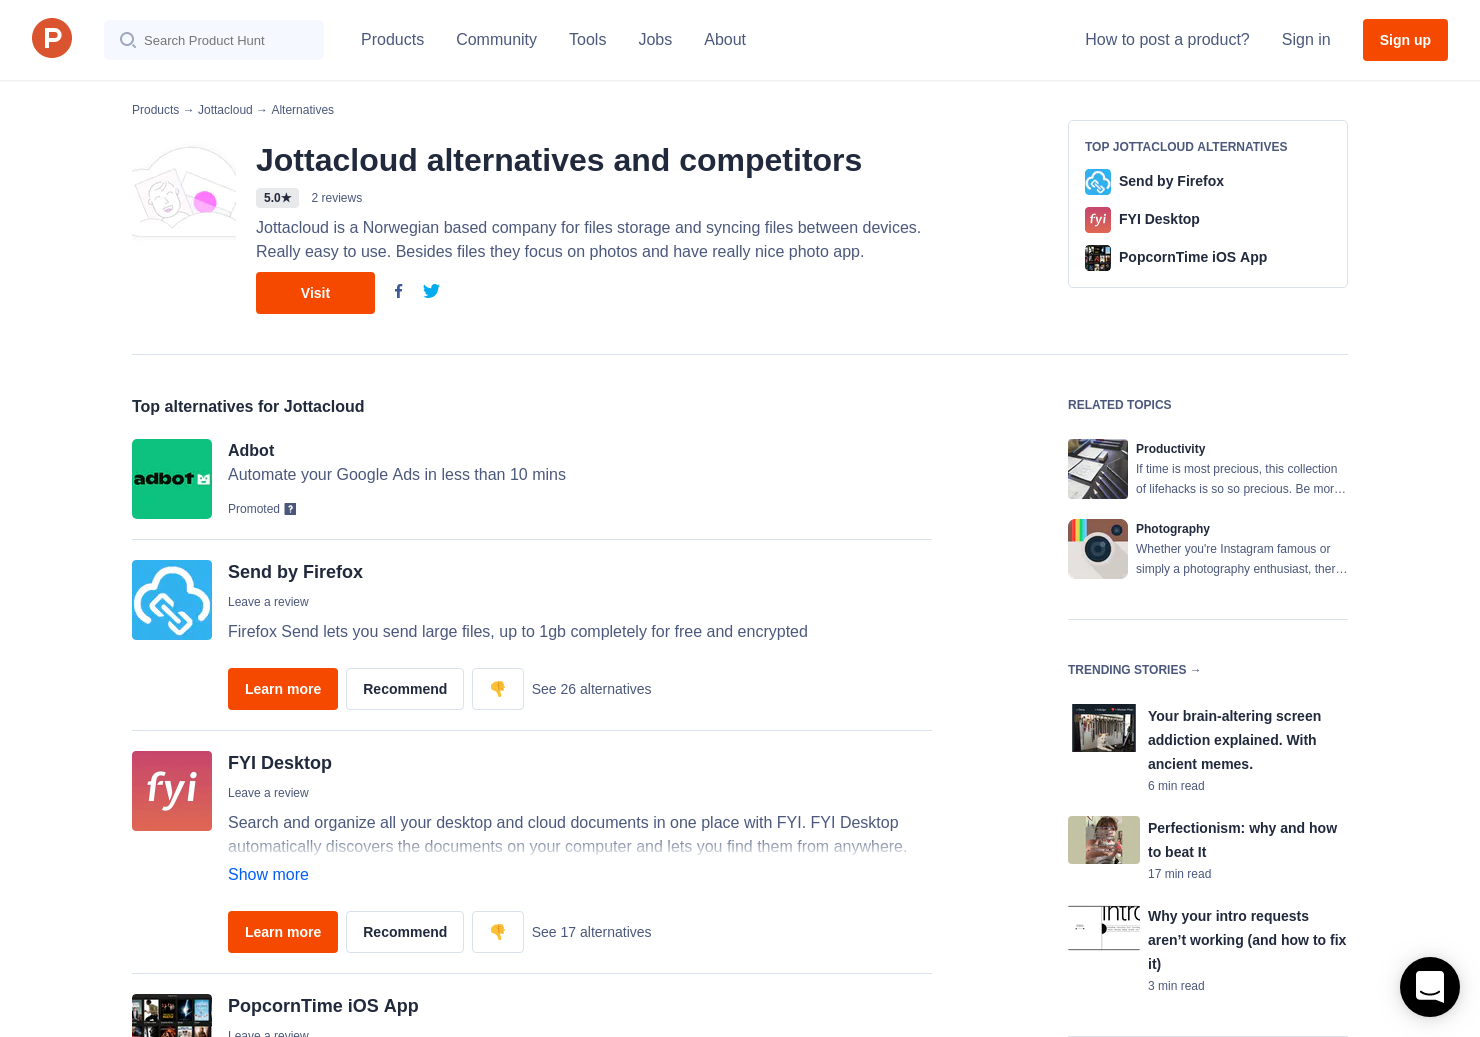 11 Alternatives to Jottacloud   Product Hunt